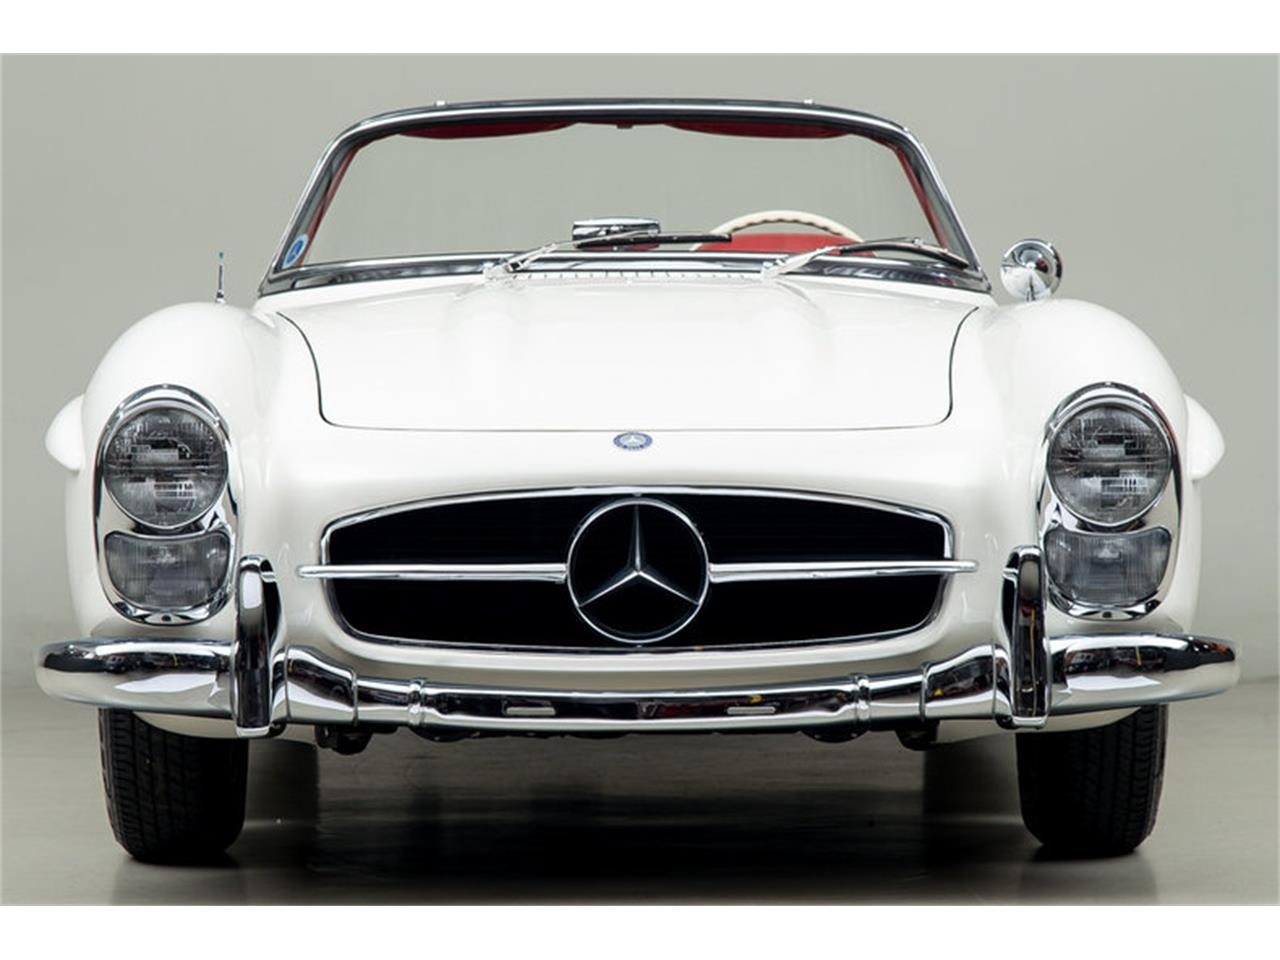 Large Picture of '63 300SL Roadster located in Scotts Valley California Auction Vehicle - EFPZ